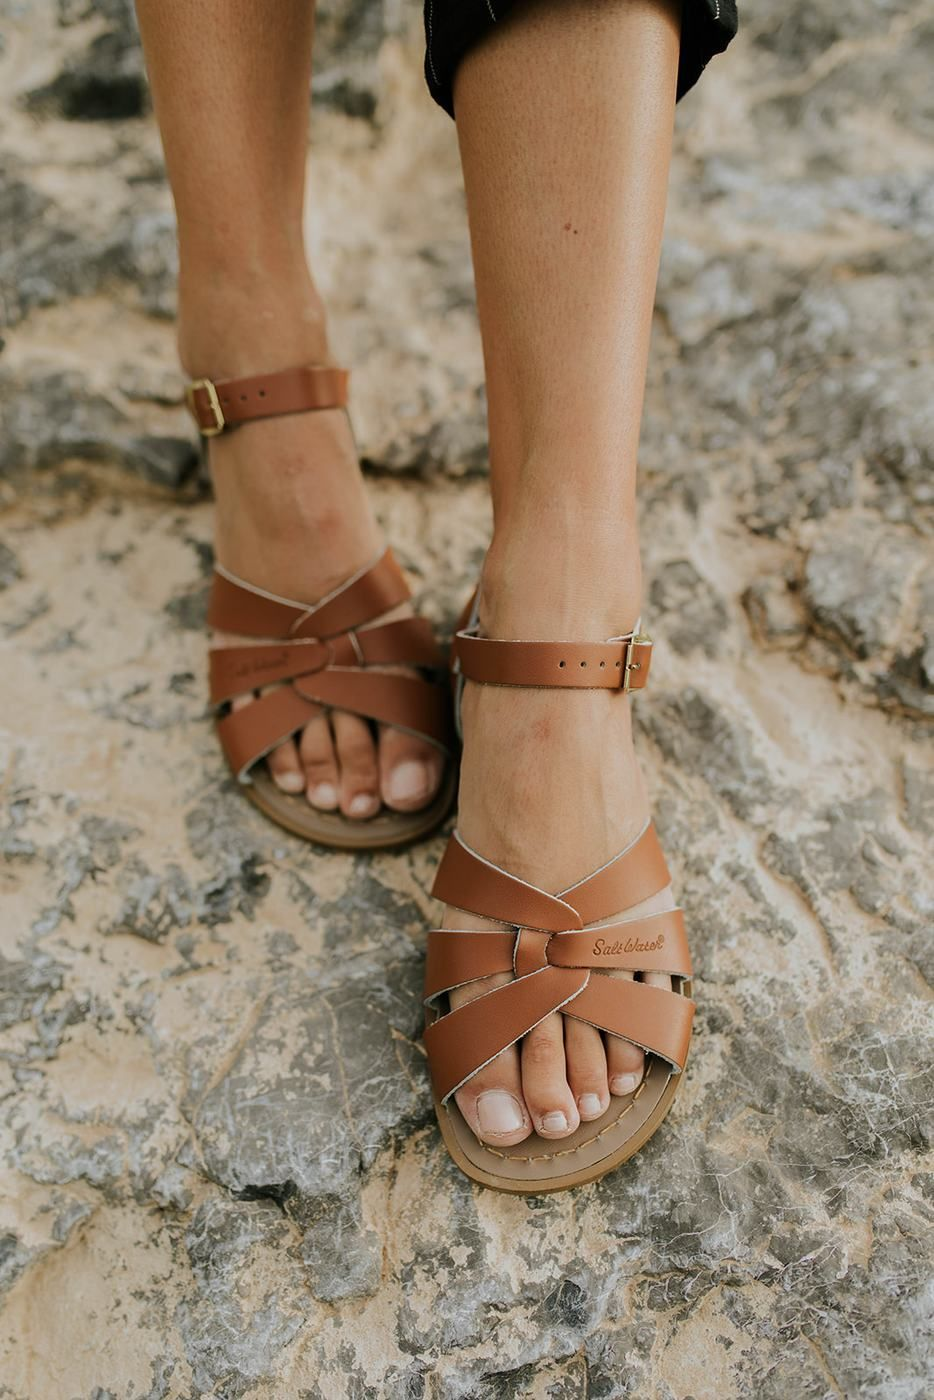 dcc2c9d8b938d4 Simple and casual leather sandals. 2019 fashion trends. Comfy leather sandal  shoes for women. Beach footwear.